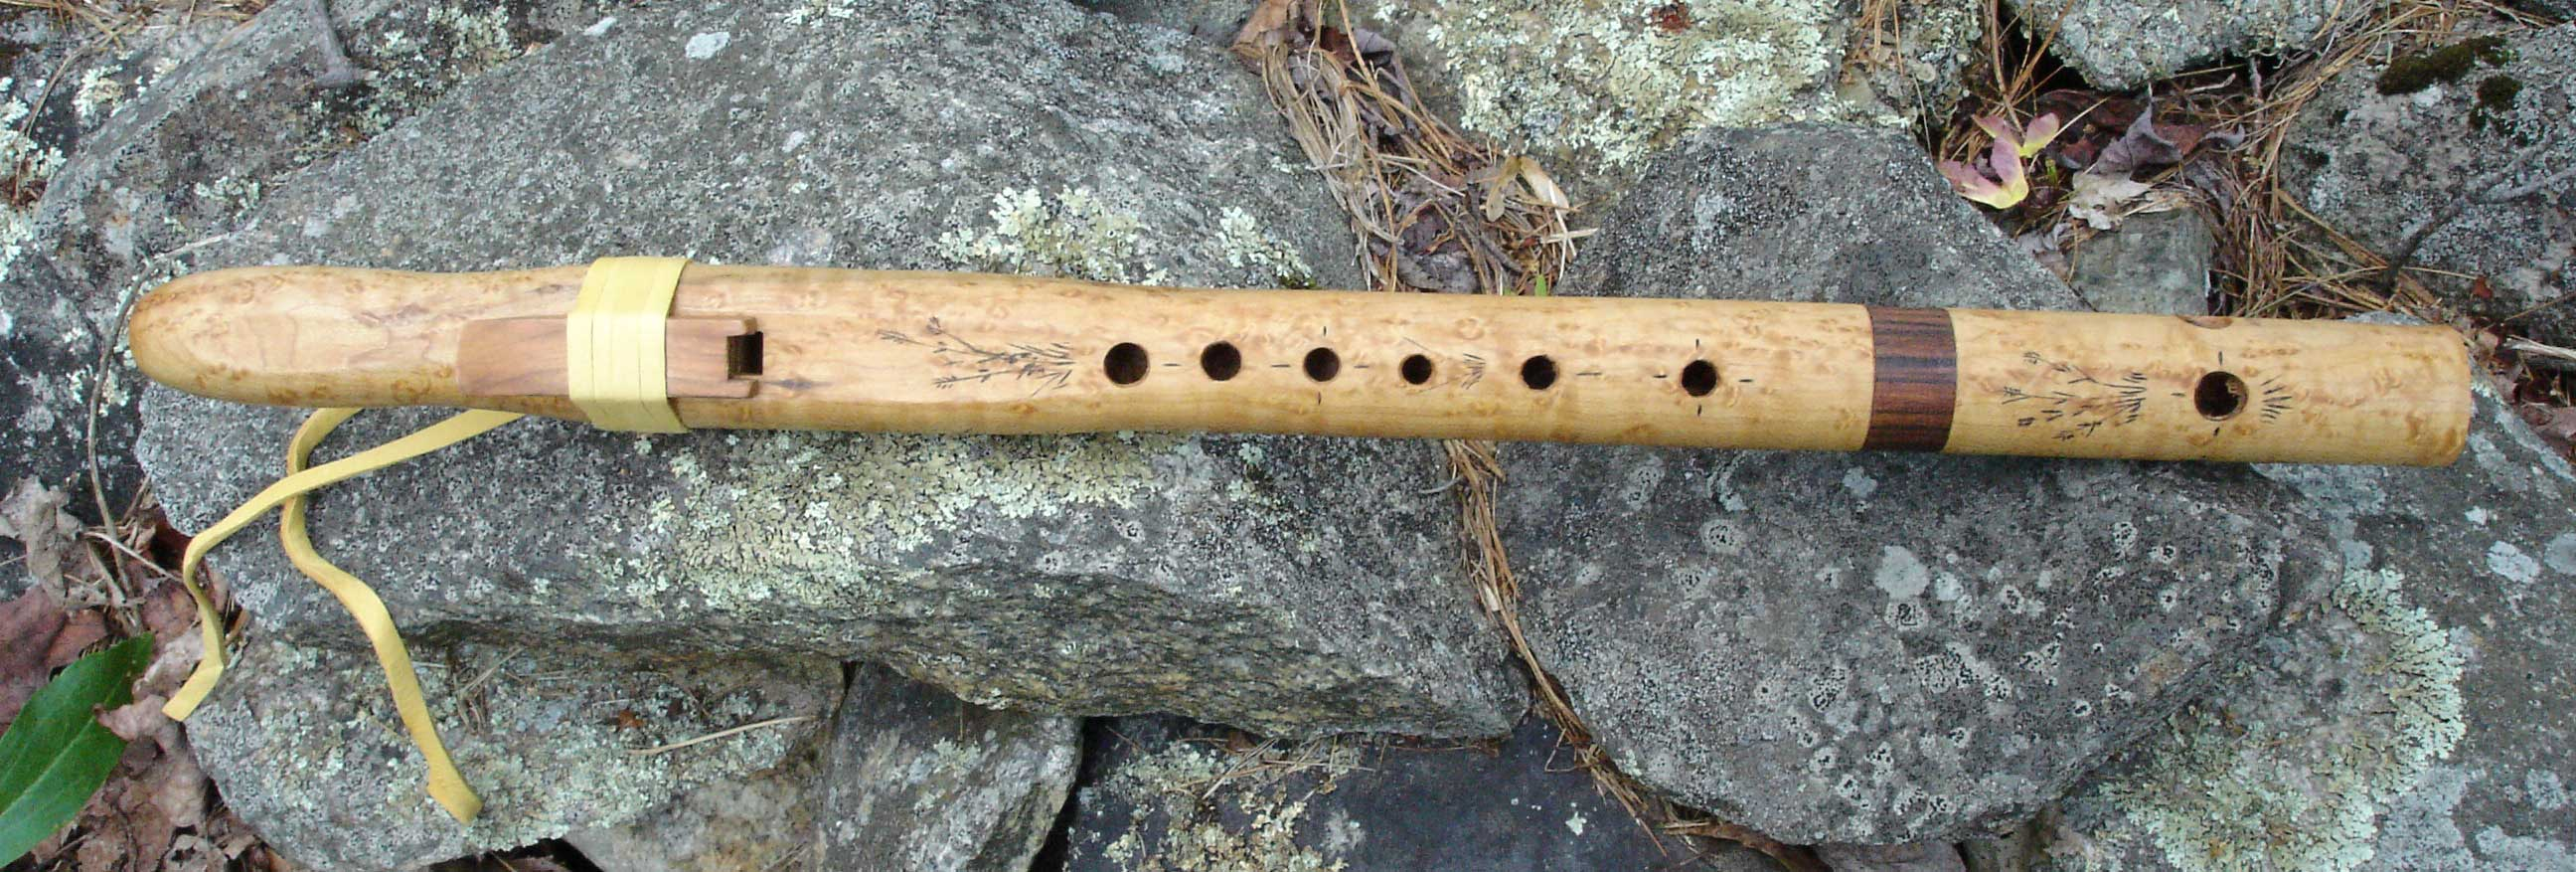 Meditation Flute in A